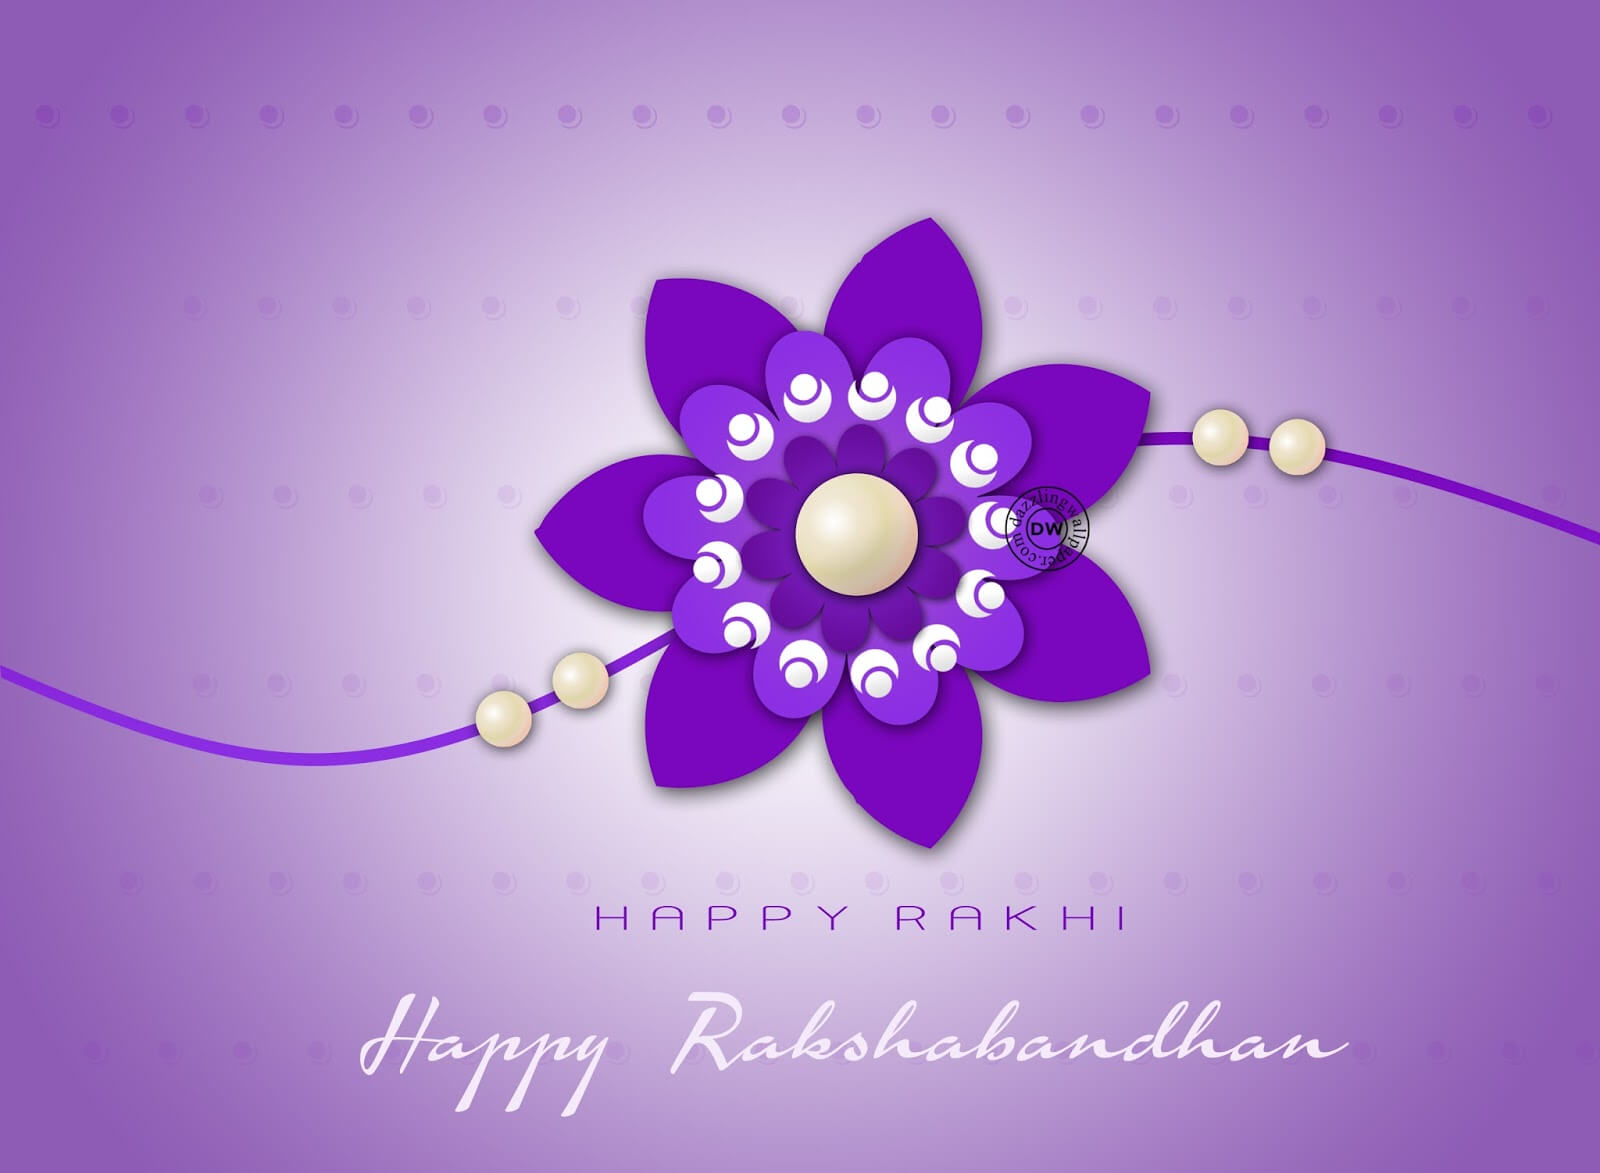 happy raksha bandhan rakhi wishes hd wallpaper